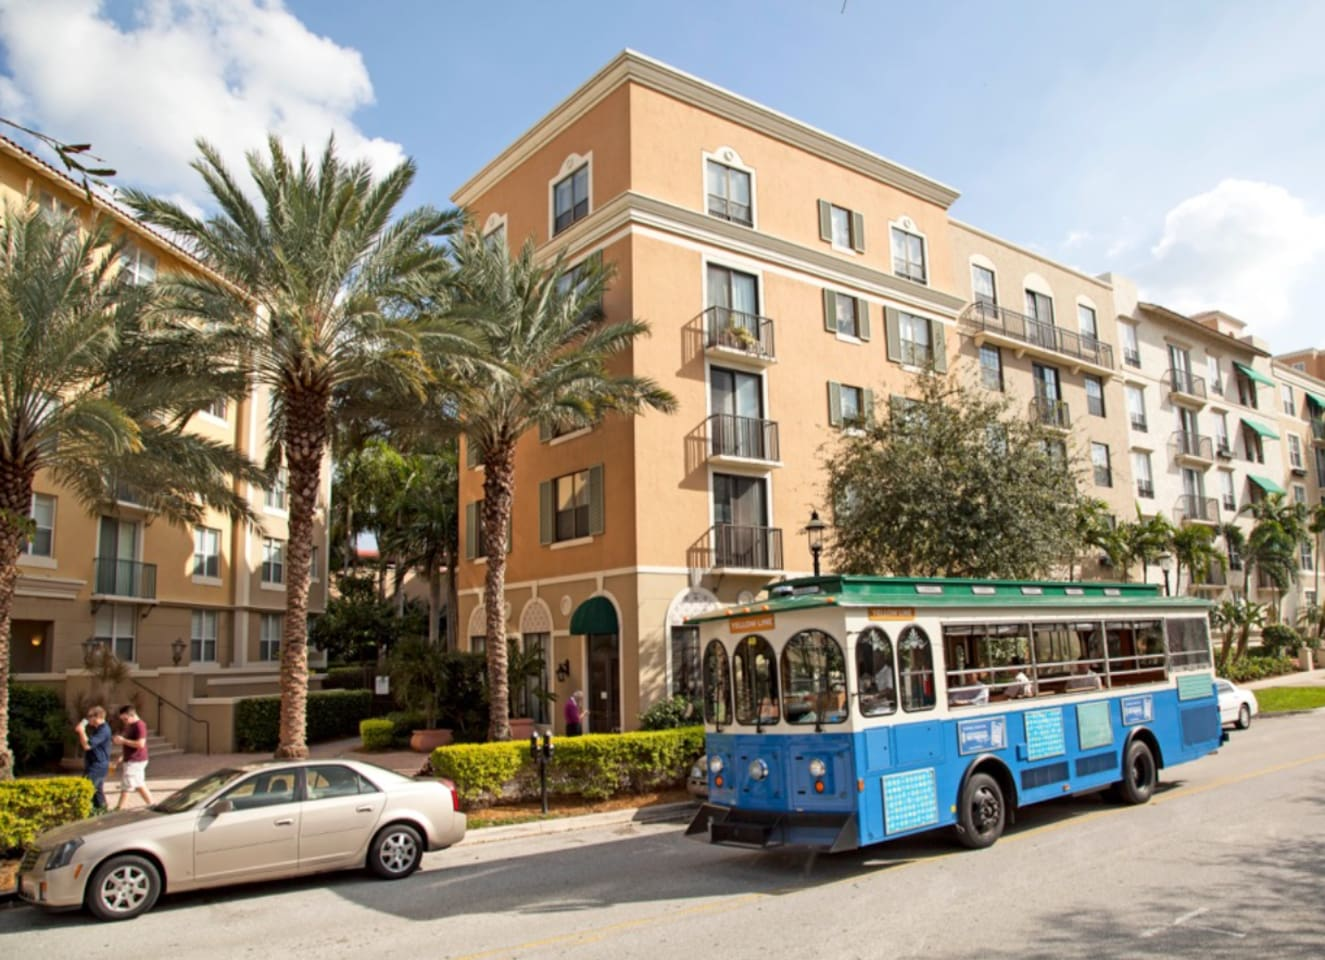 Free Trolley passing by the  Condominium on its way to Clematis Street Restaurants and Green Market